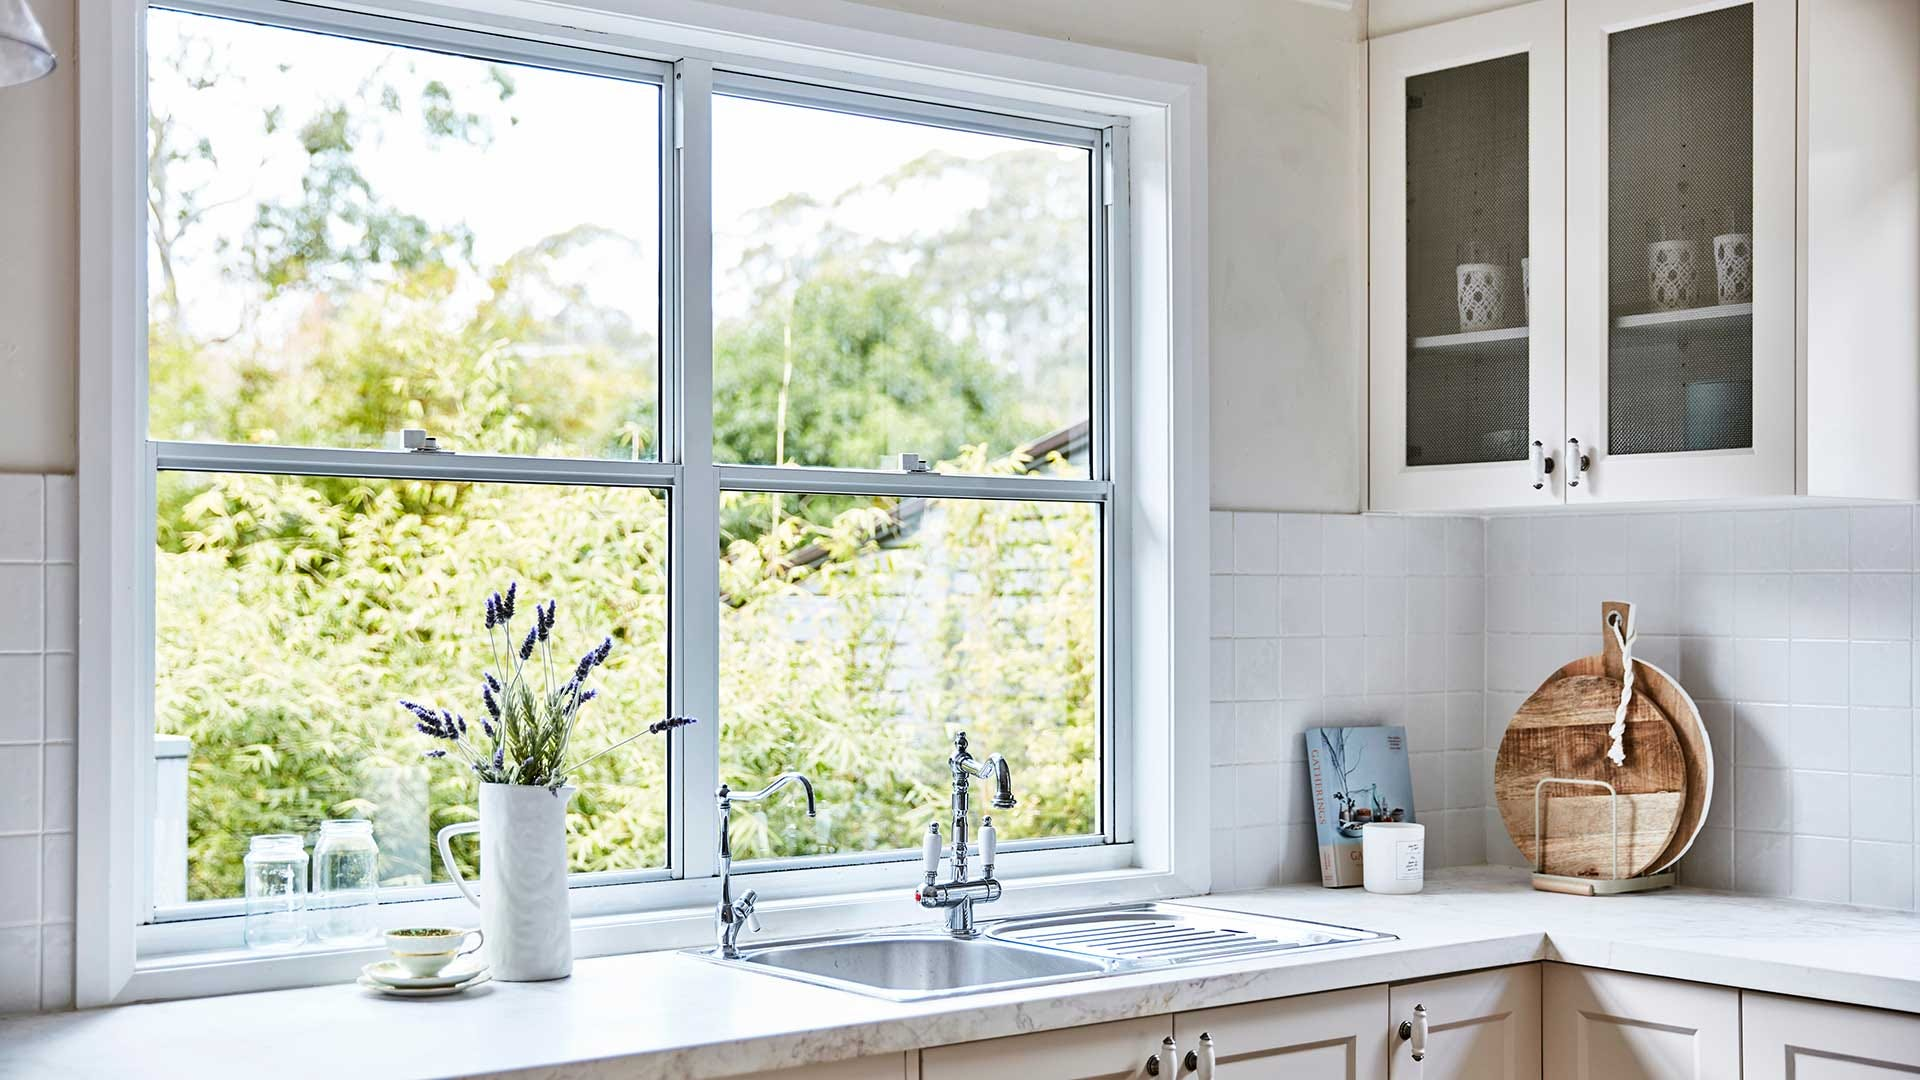 A sunny kitchen with a stainless steel sink under a large window.